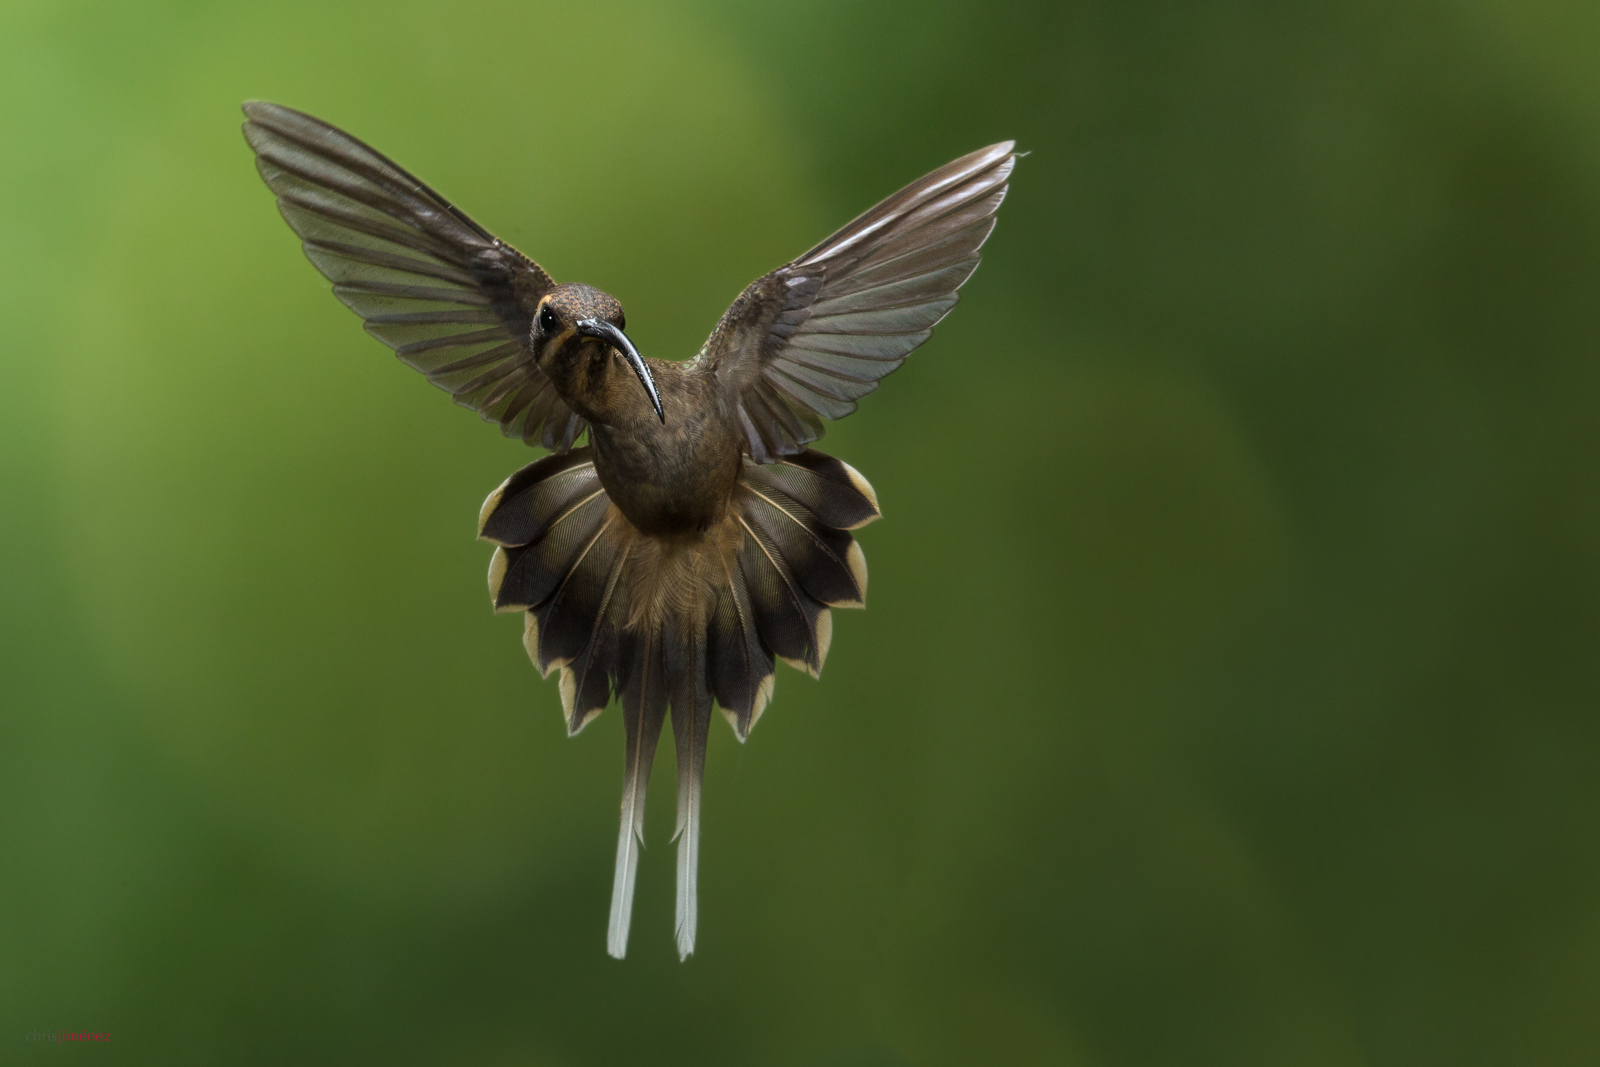 Long-billed Hermit (Phaethornis longirostris) in flight at the low lands of Costa Rica